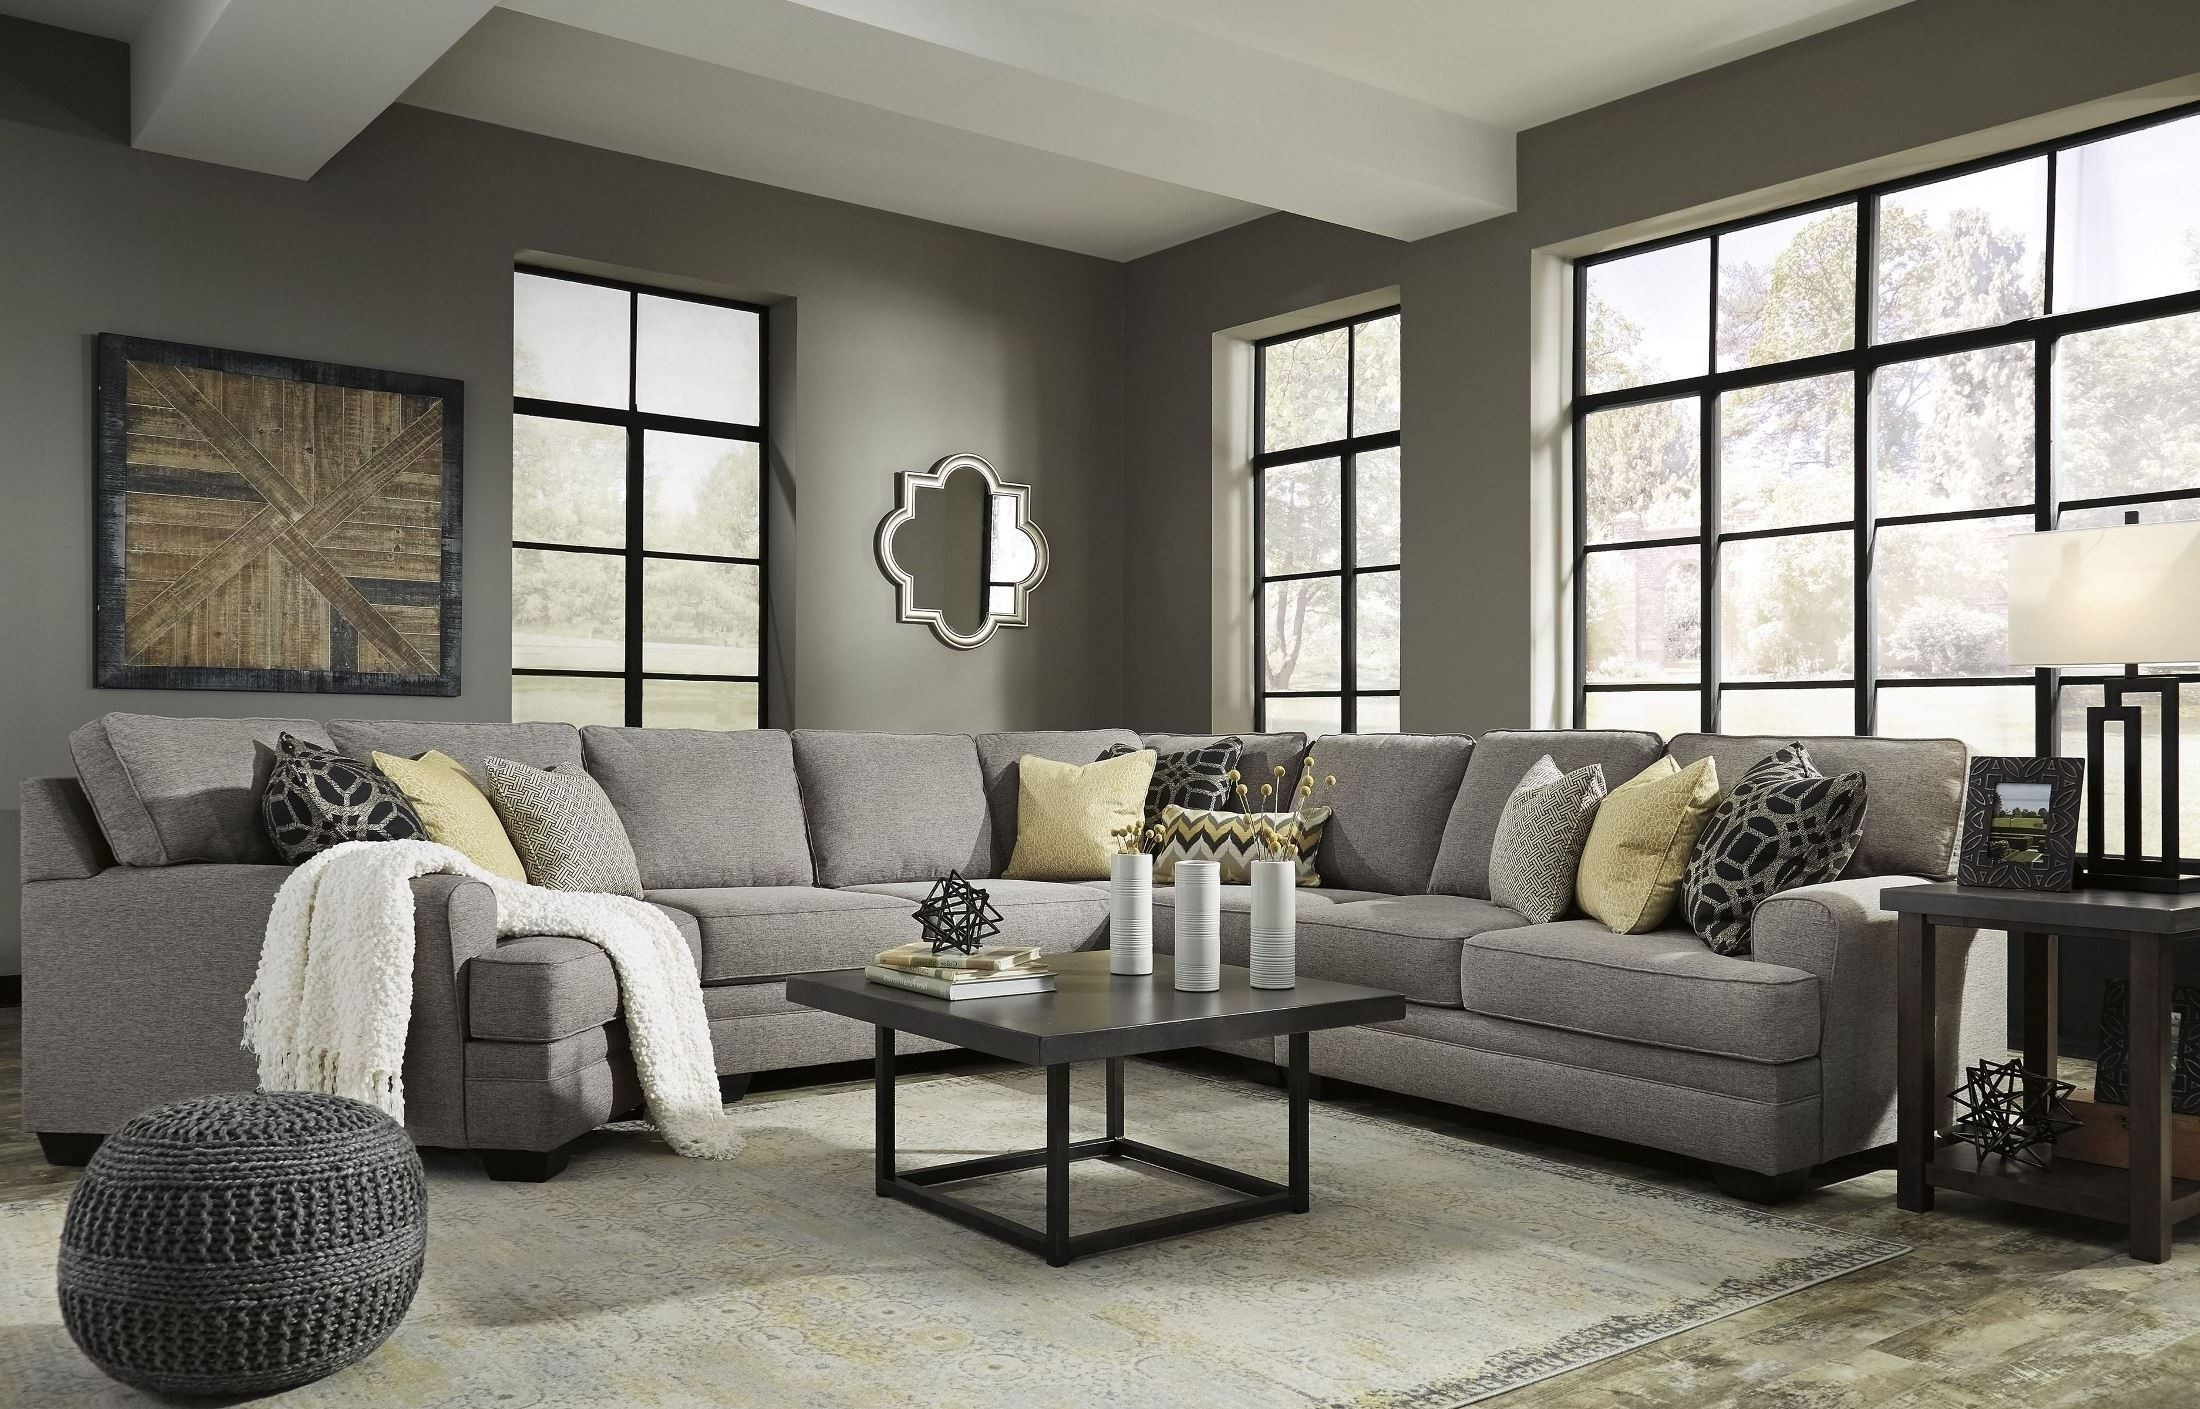 Cresson Pewter Laf Cuddler Sectional From Ashley | Coleman Furniture Intended For Aspen 2 Piece Sectionals With Laf Chaise (Image 13 of 25)